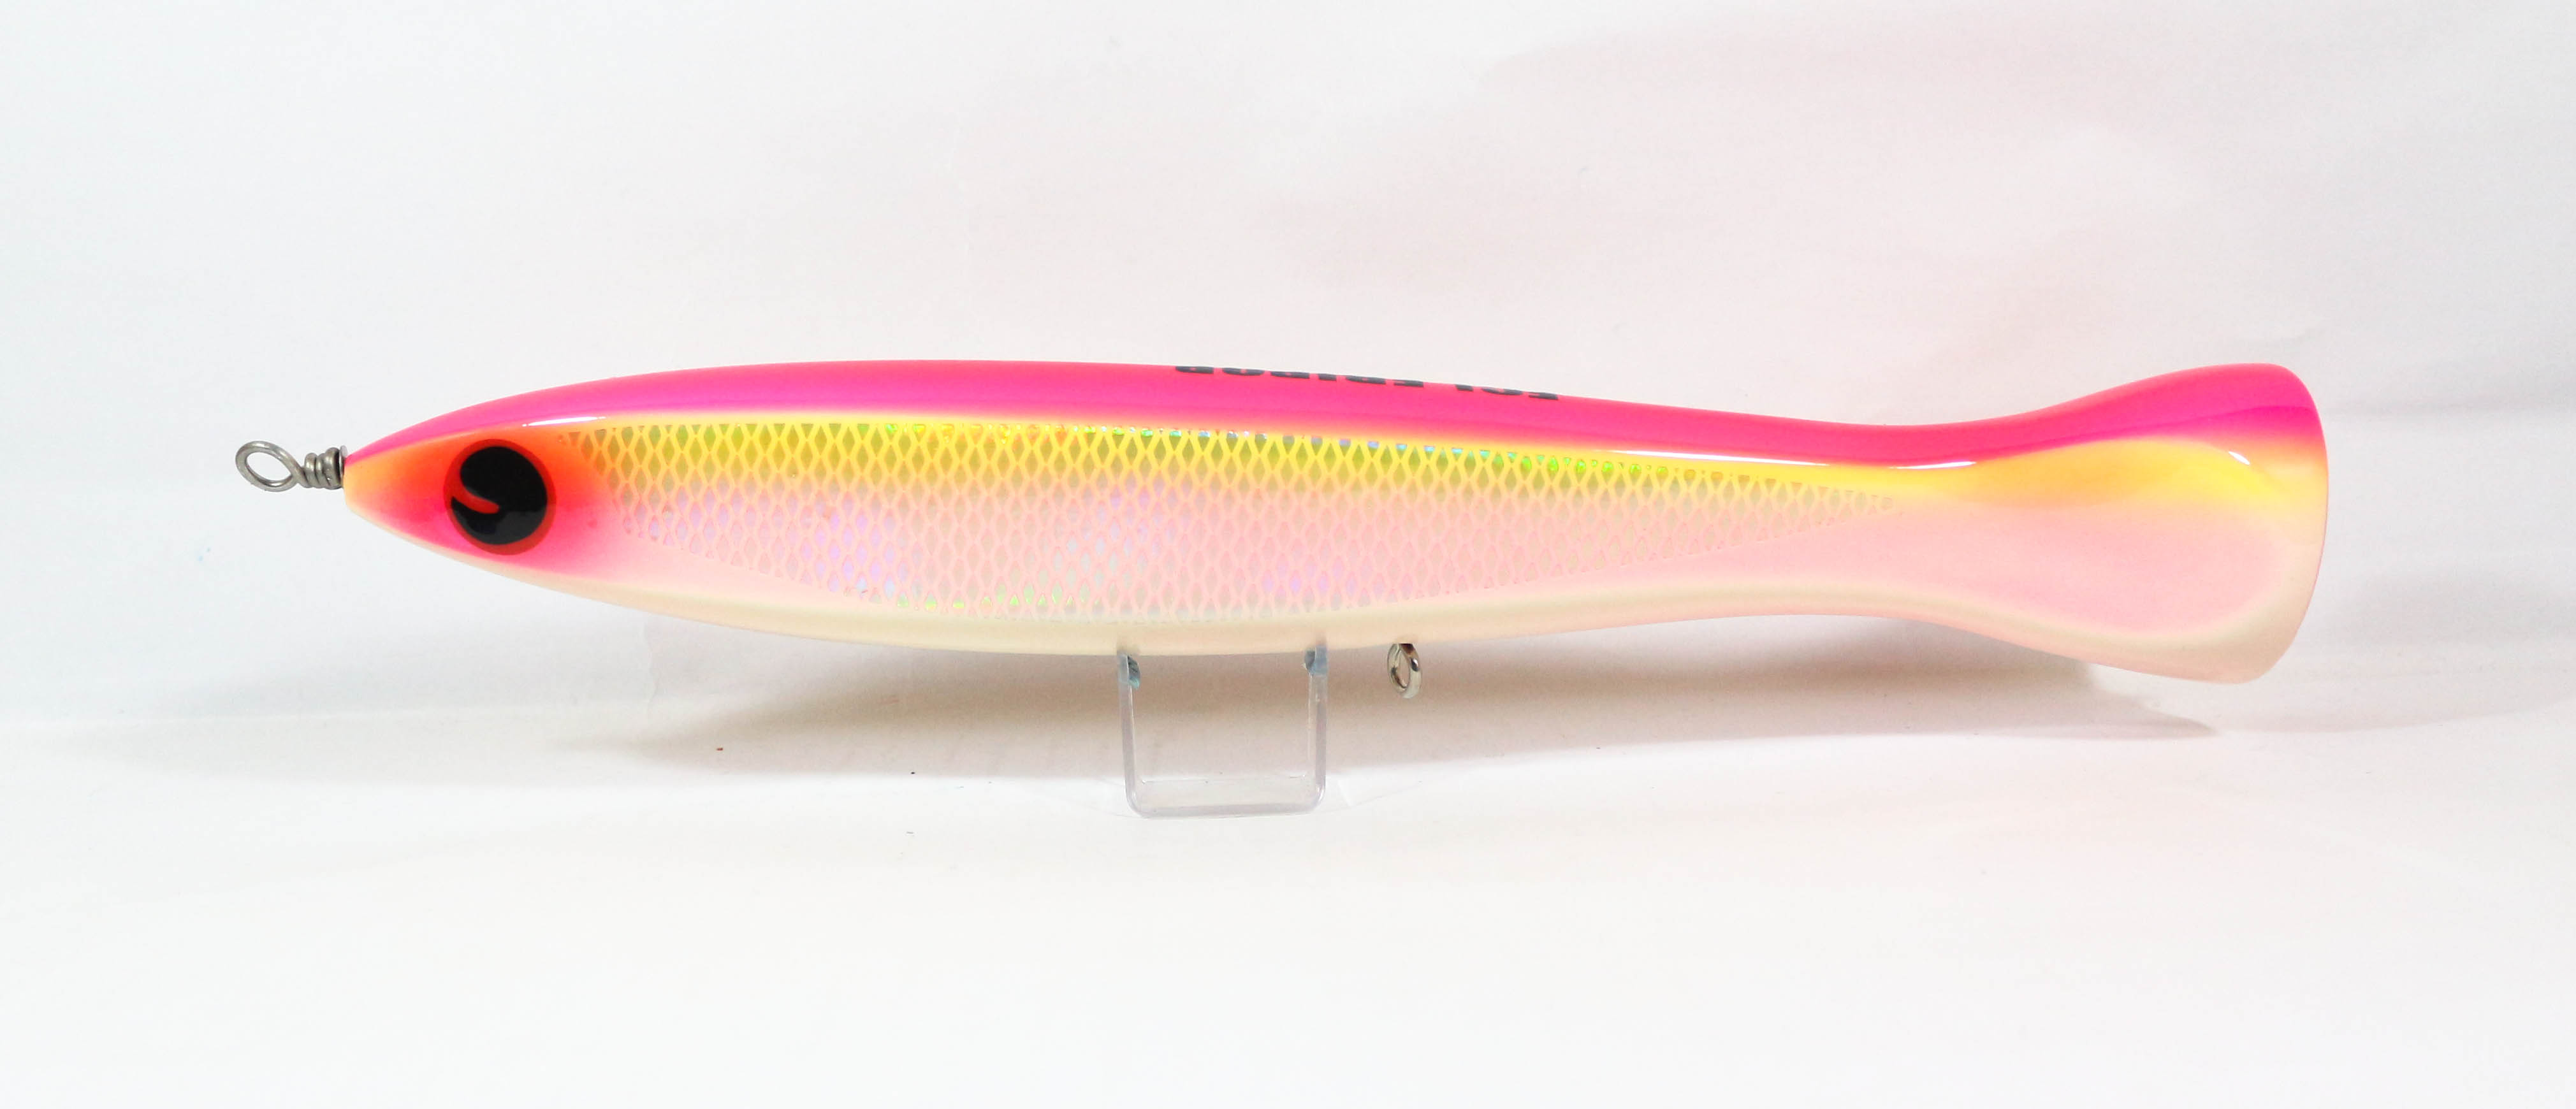 FCL Labo Popper Ebi Pop 200F Floating Lure 200 grams Pink Chart Scale (0069)